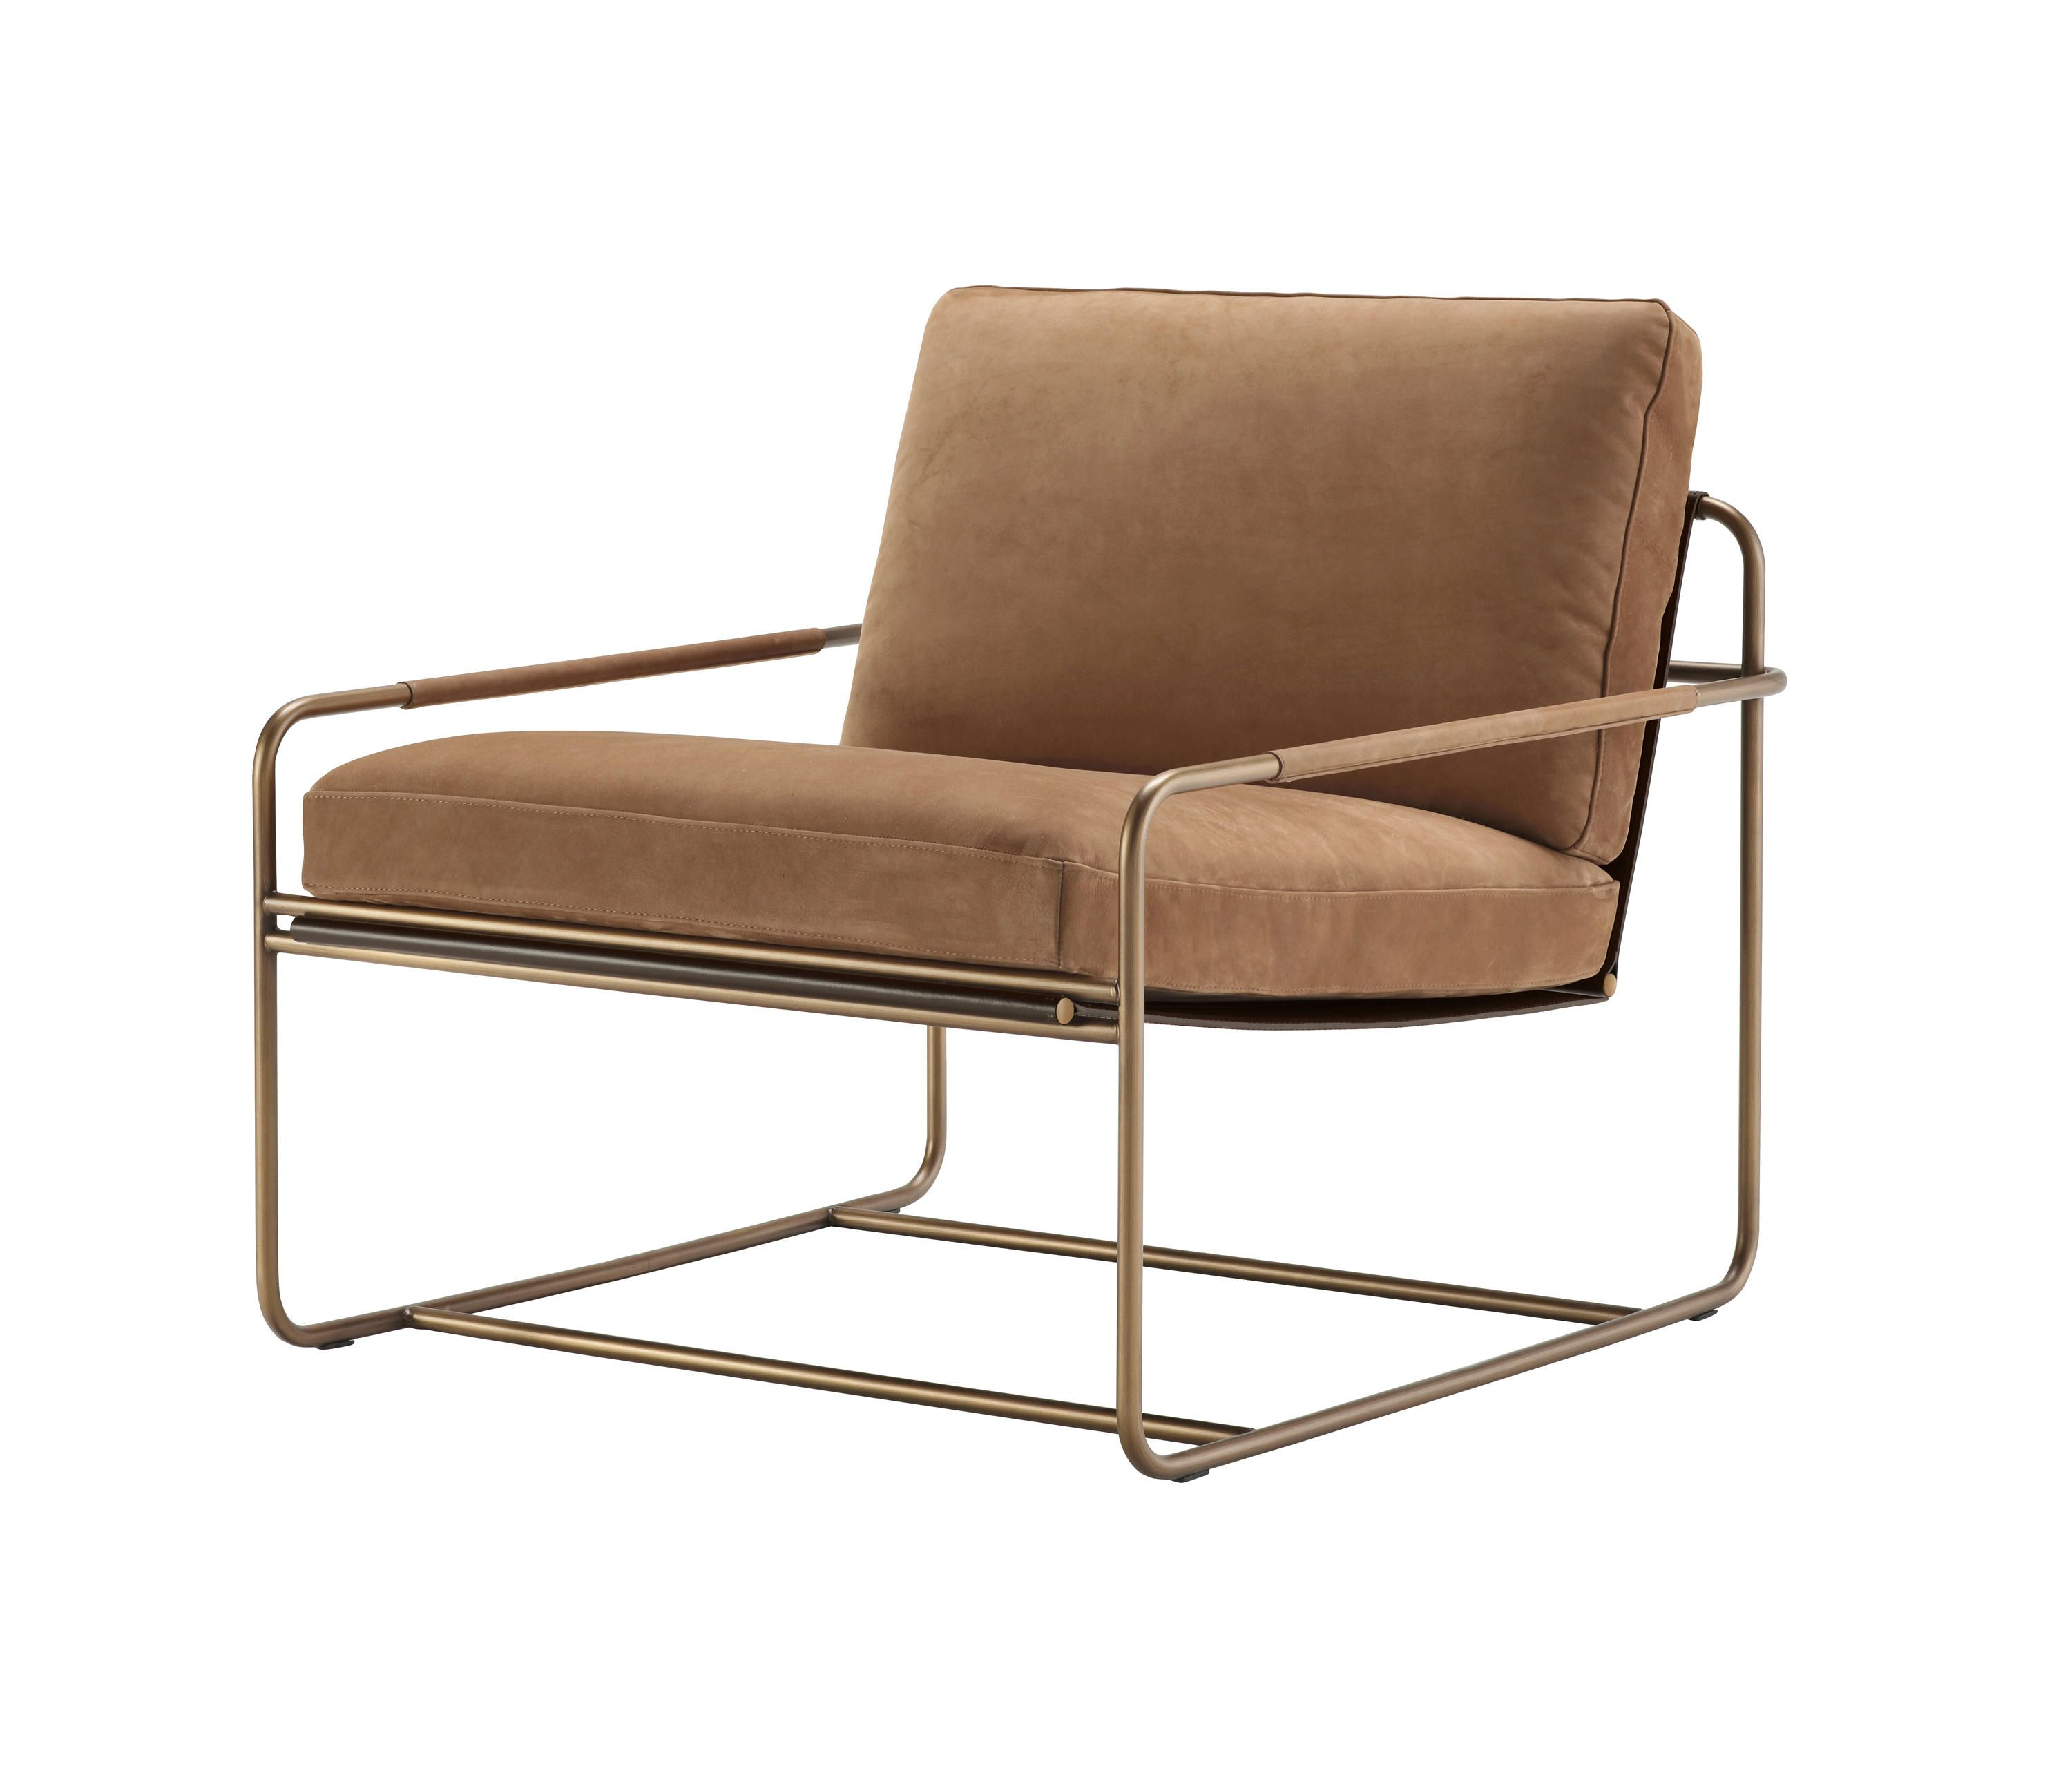 Related Image Lounge Armchair Contemporary Furniture Design Armchair